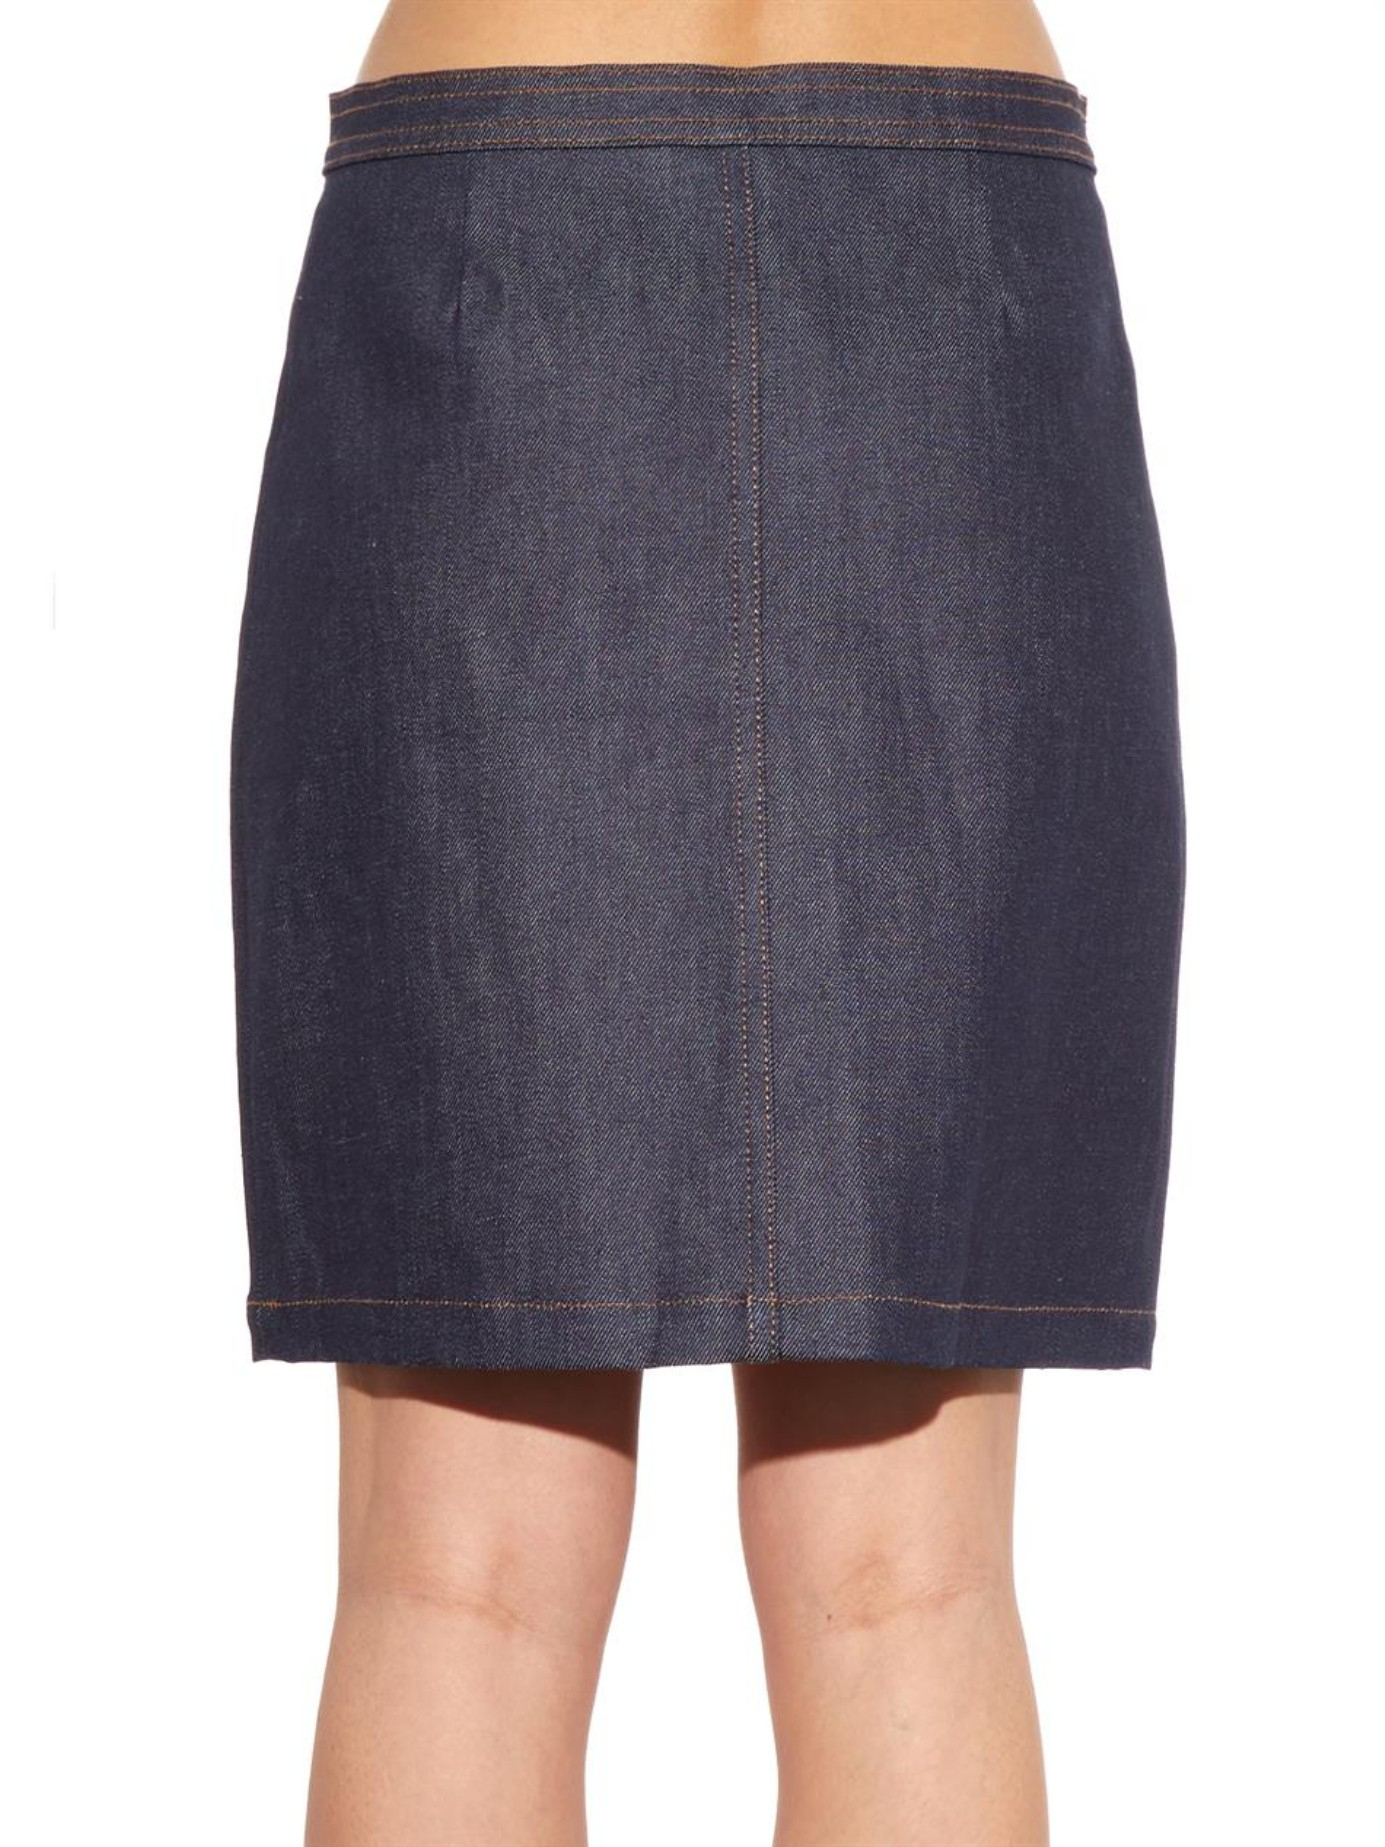 Apc Denim Skirt - Skirts